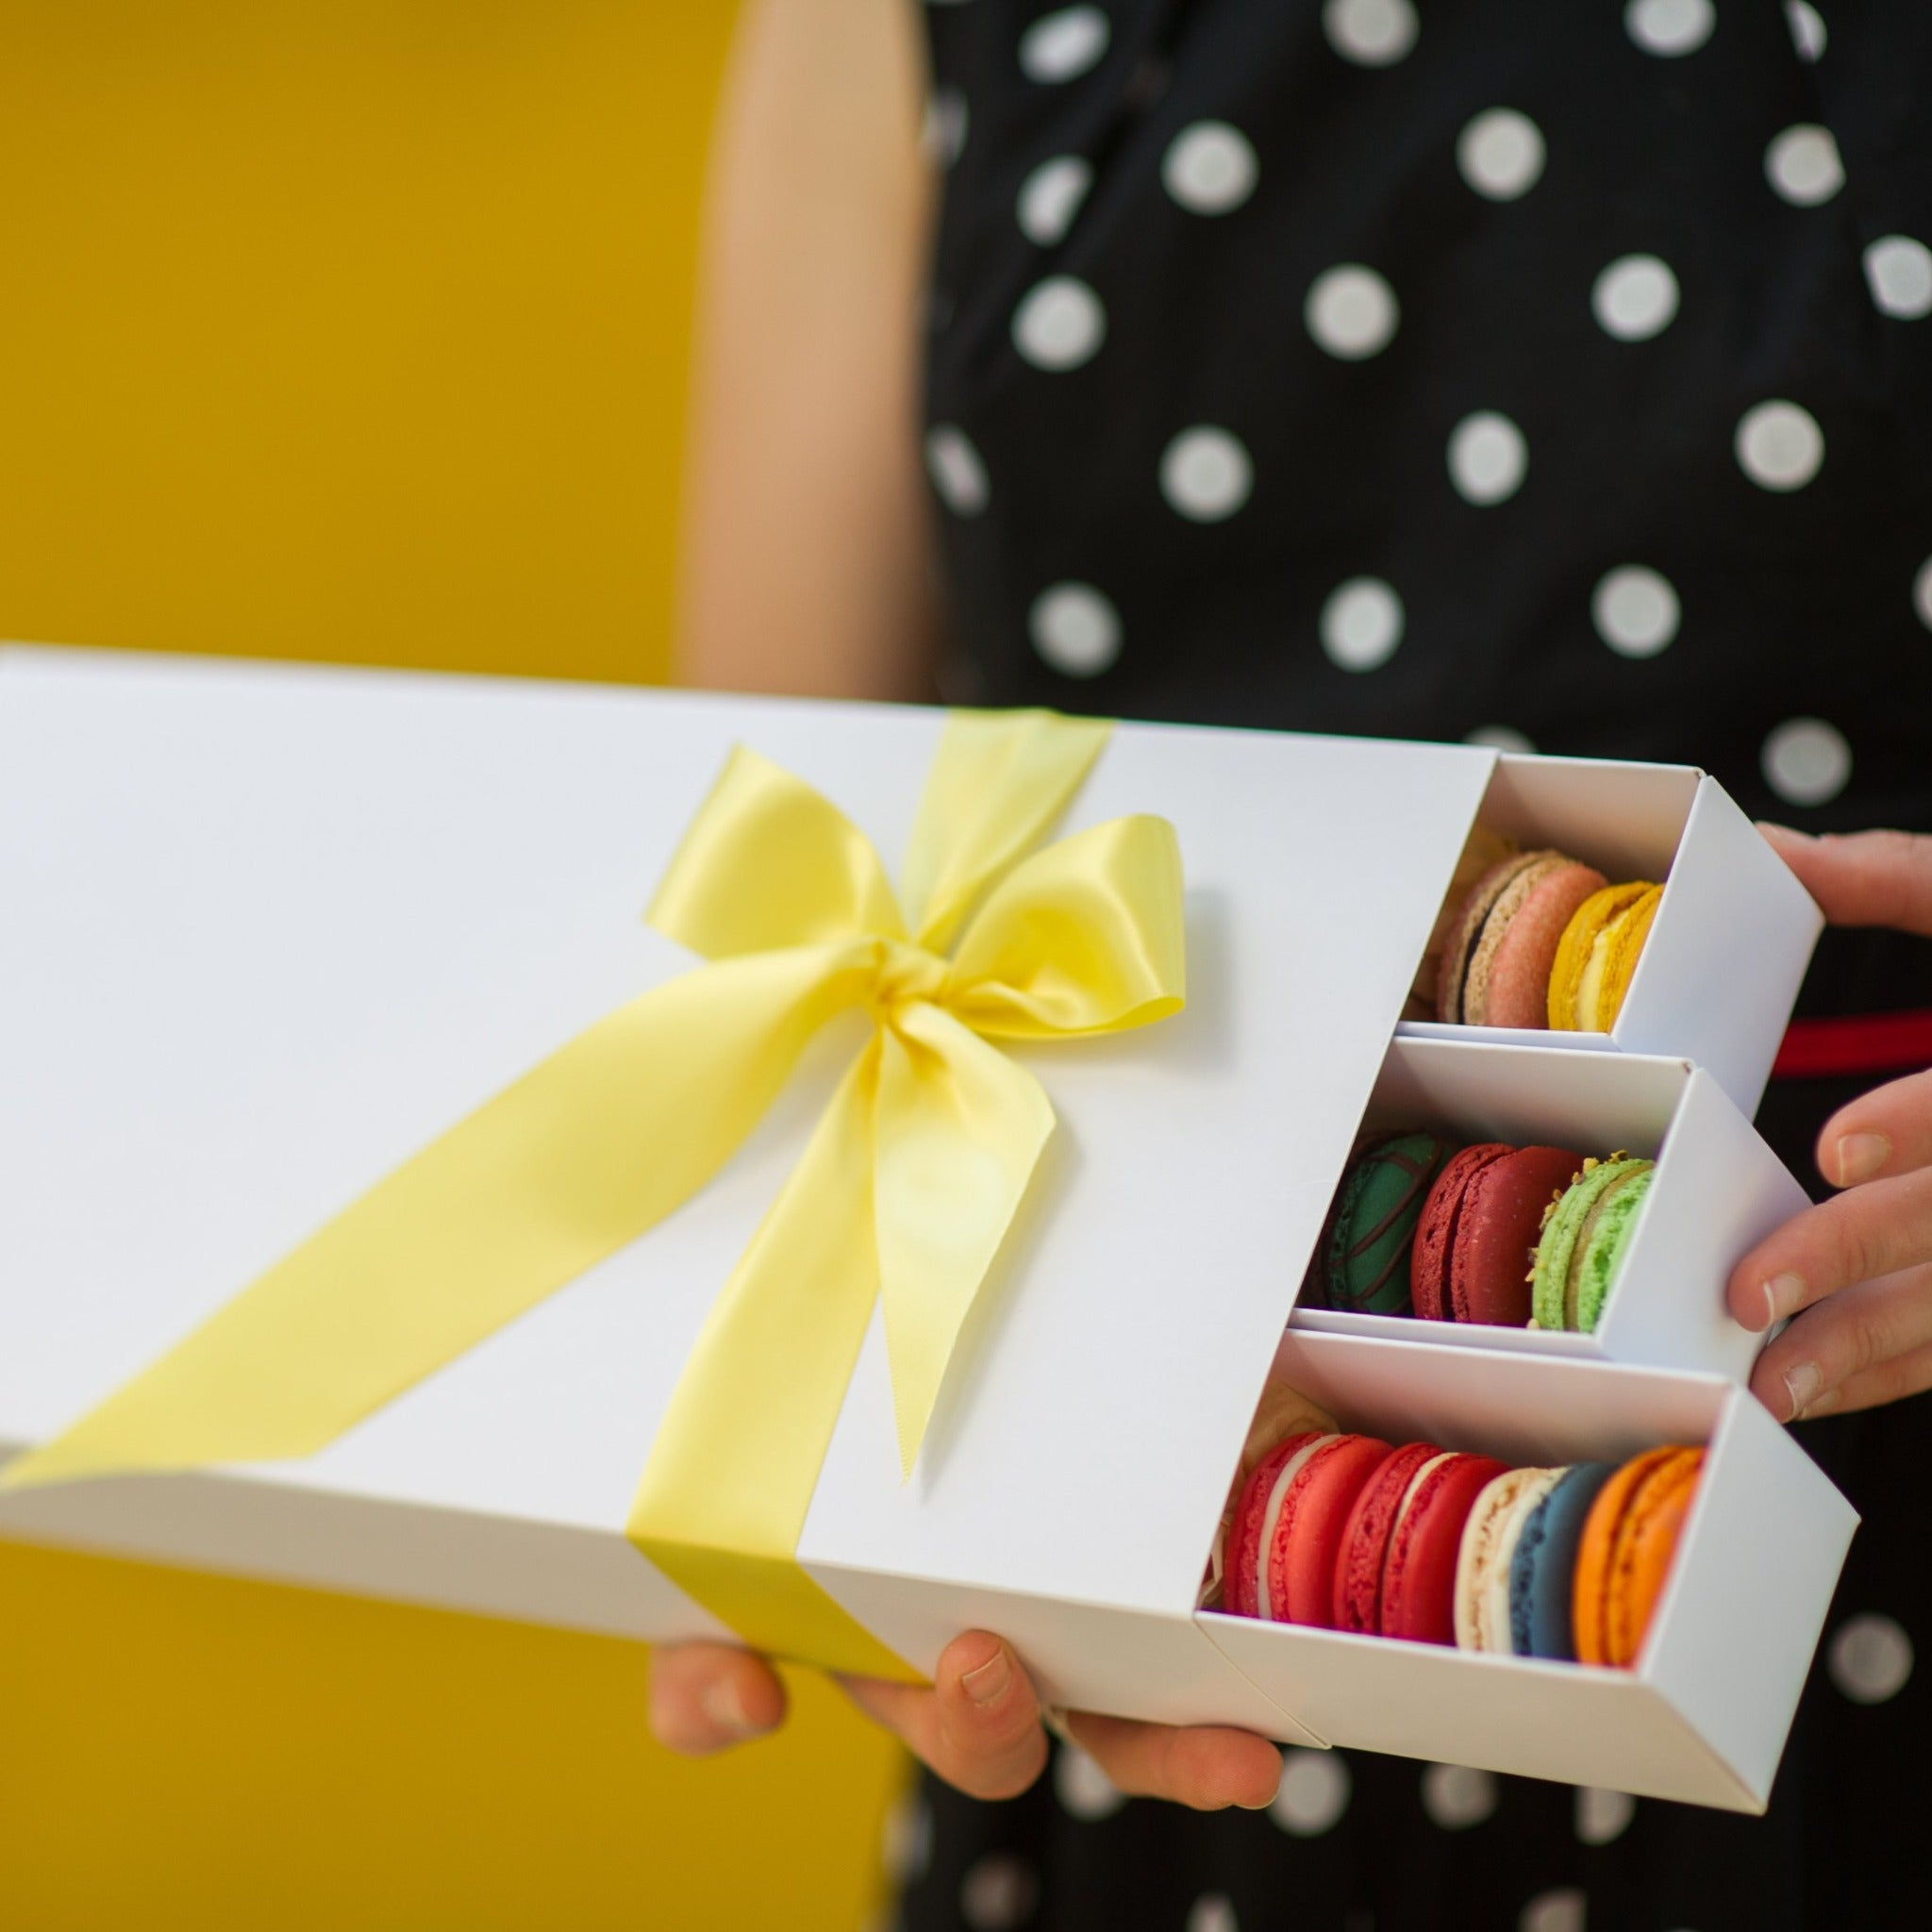 Such a lovely gift of love and macarons!